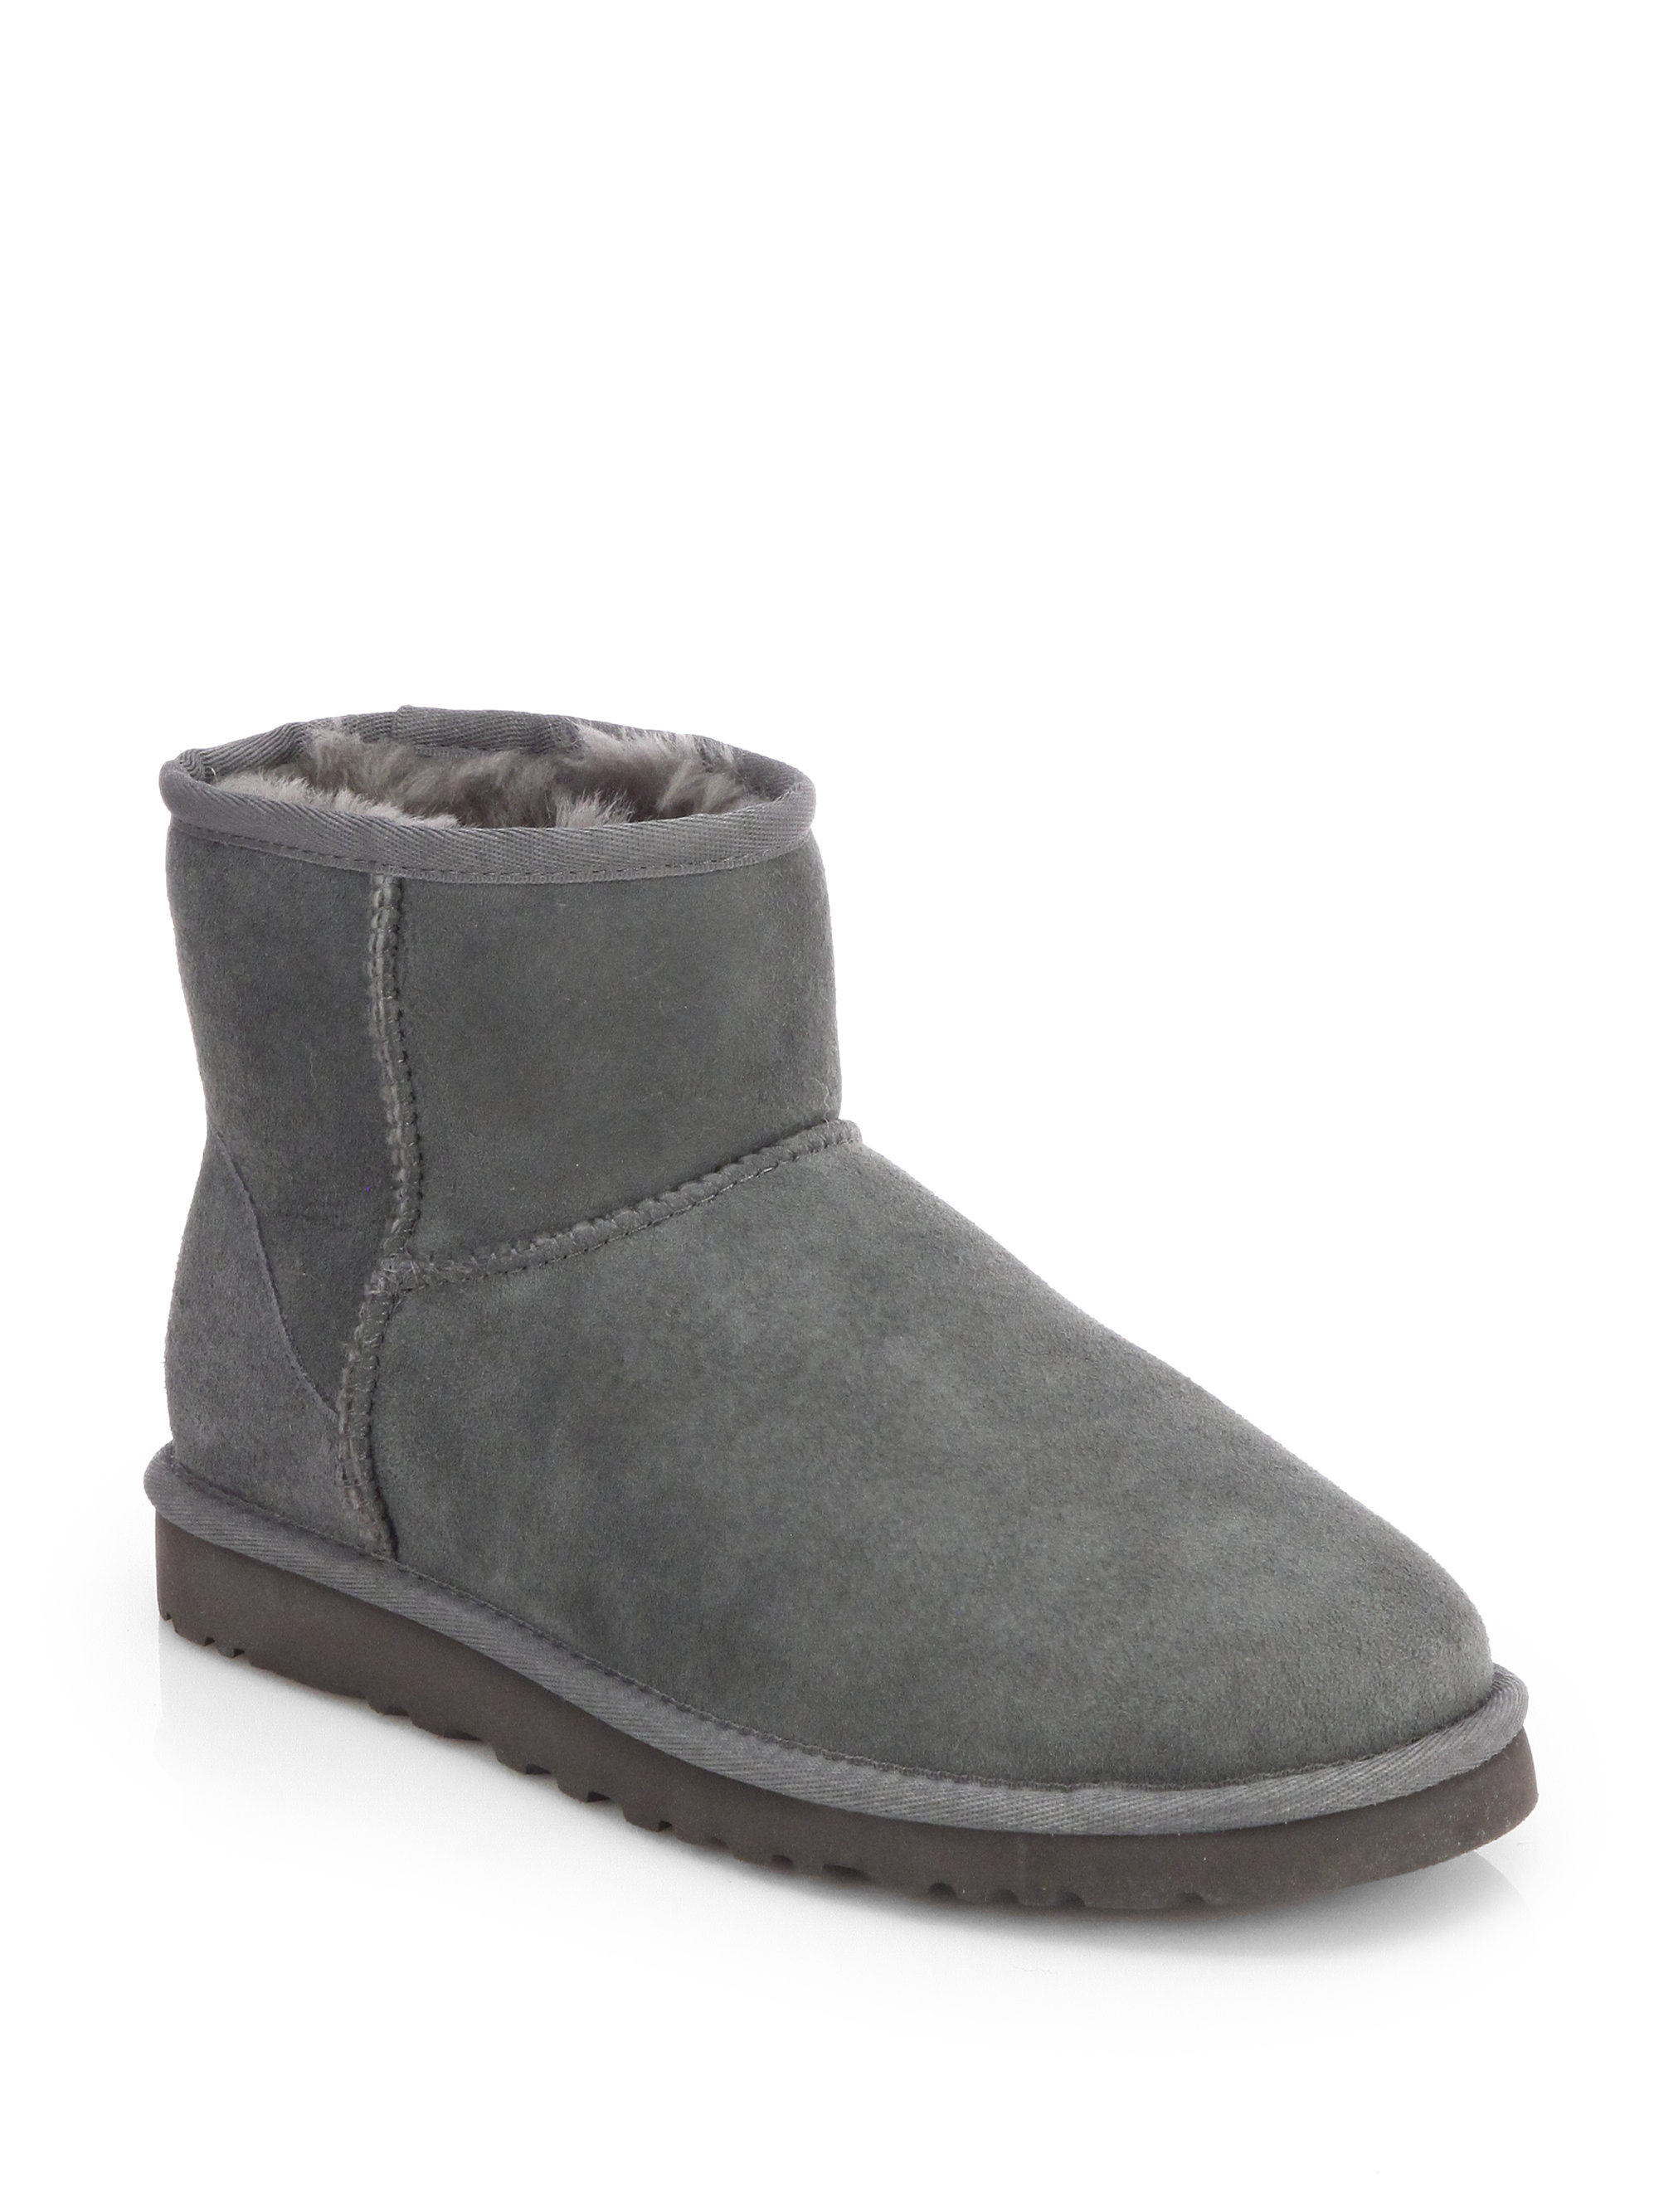 Ugg Classic Mini Suede Amp Shearling Boots In Gray Lyst